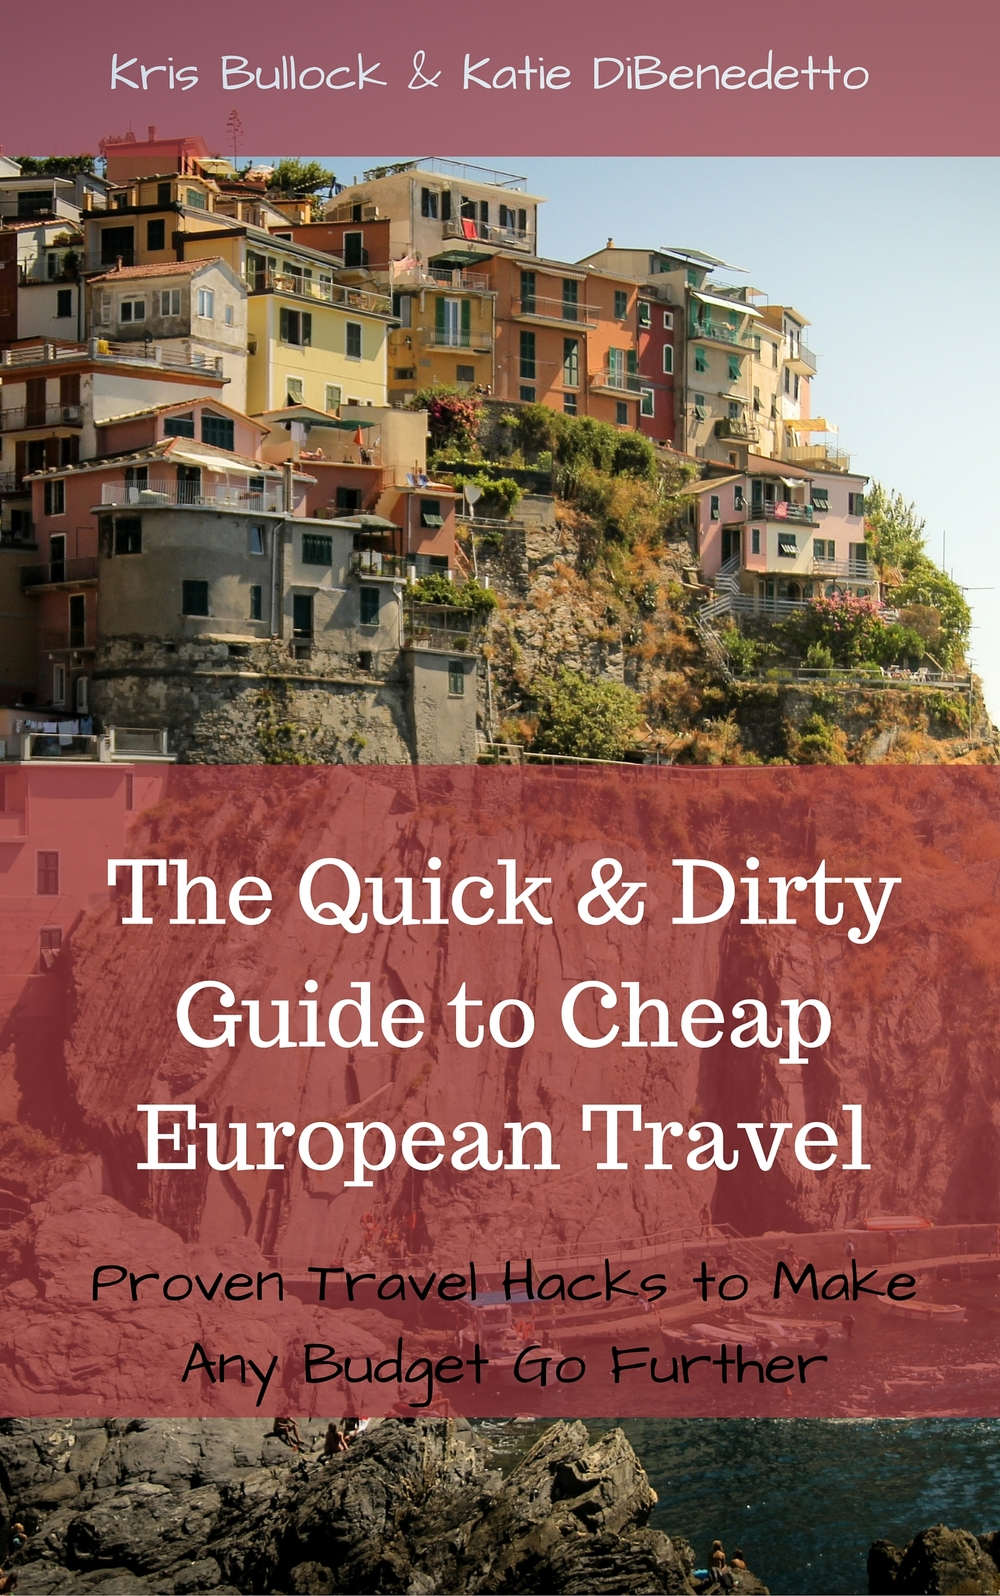 Cheap European Travel: Proven Travel Hacks to Make Any Budget Go Further